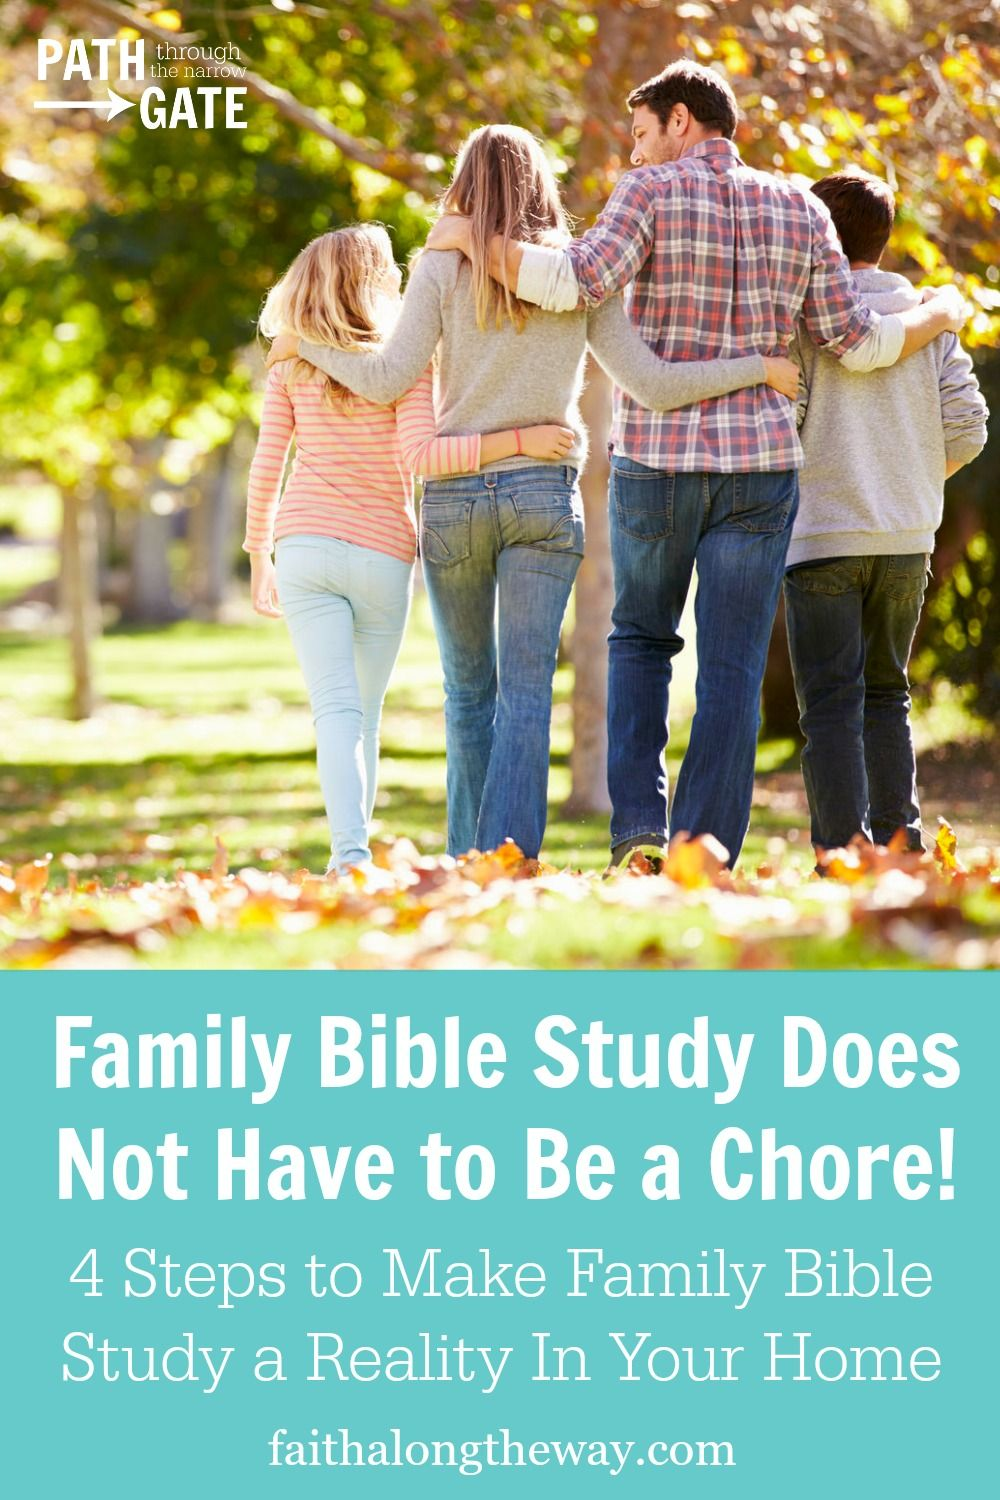 4 steps to making family bible study a reality in your home